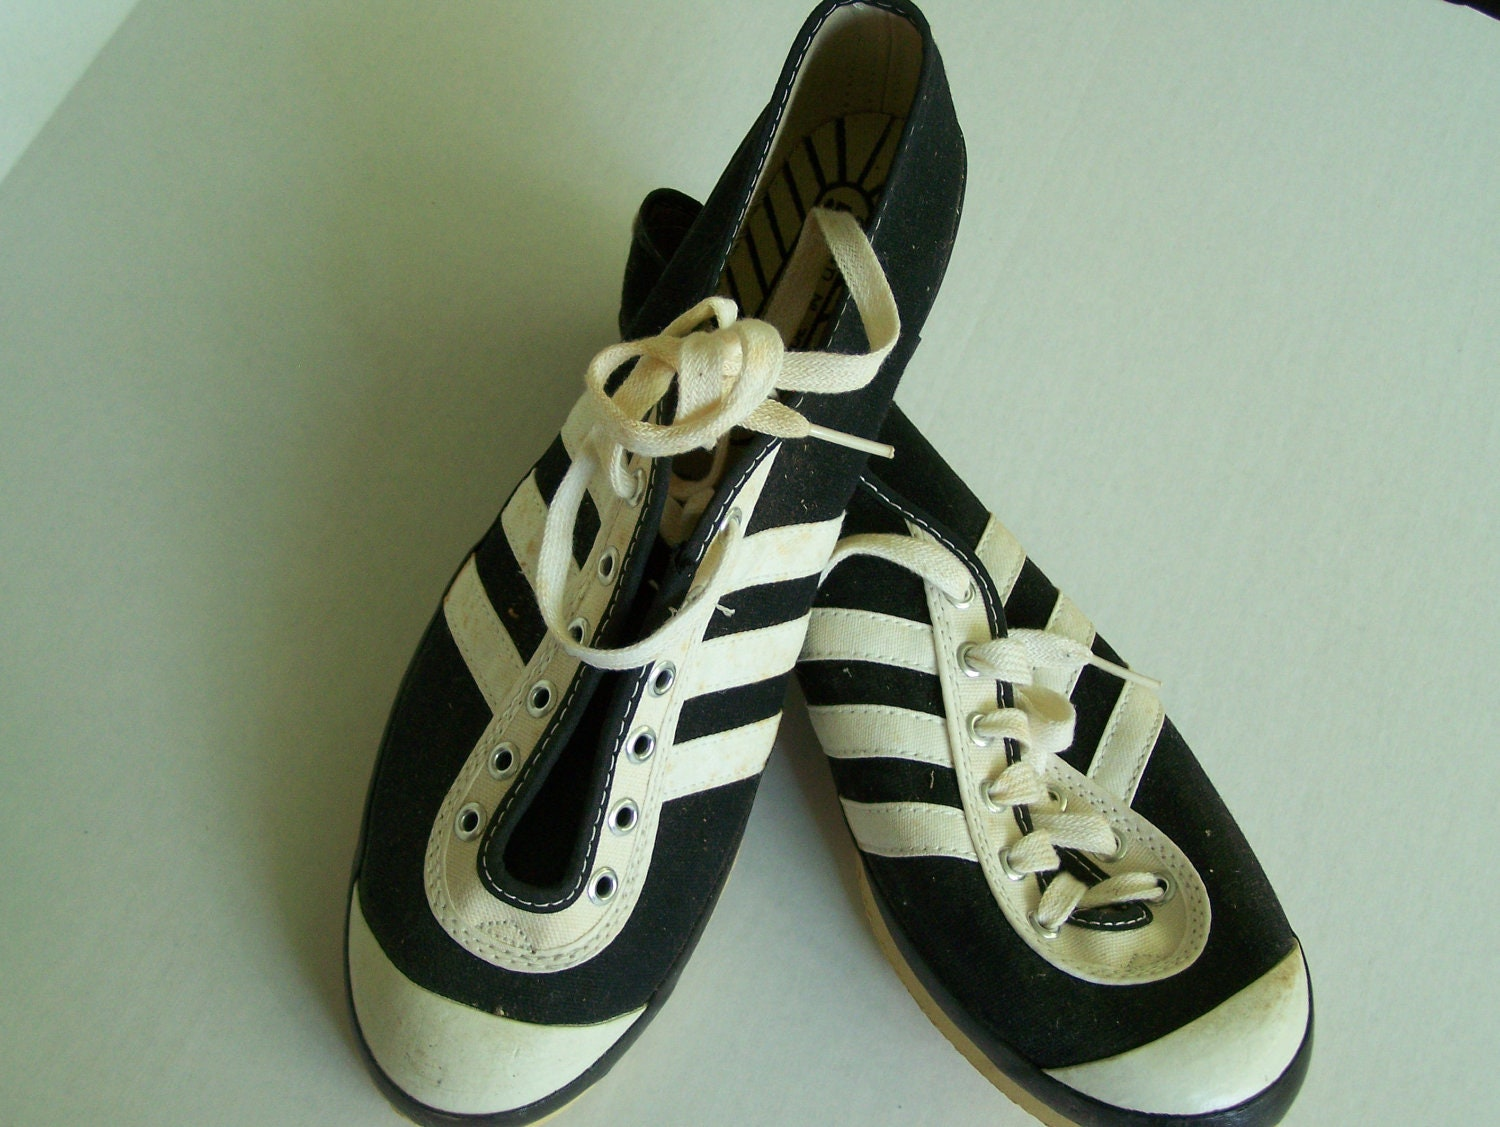 Track King Track Shoes Vintage 3 Striped 1970s New Old Stock